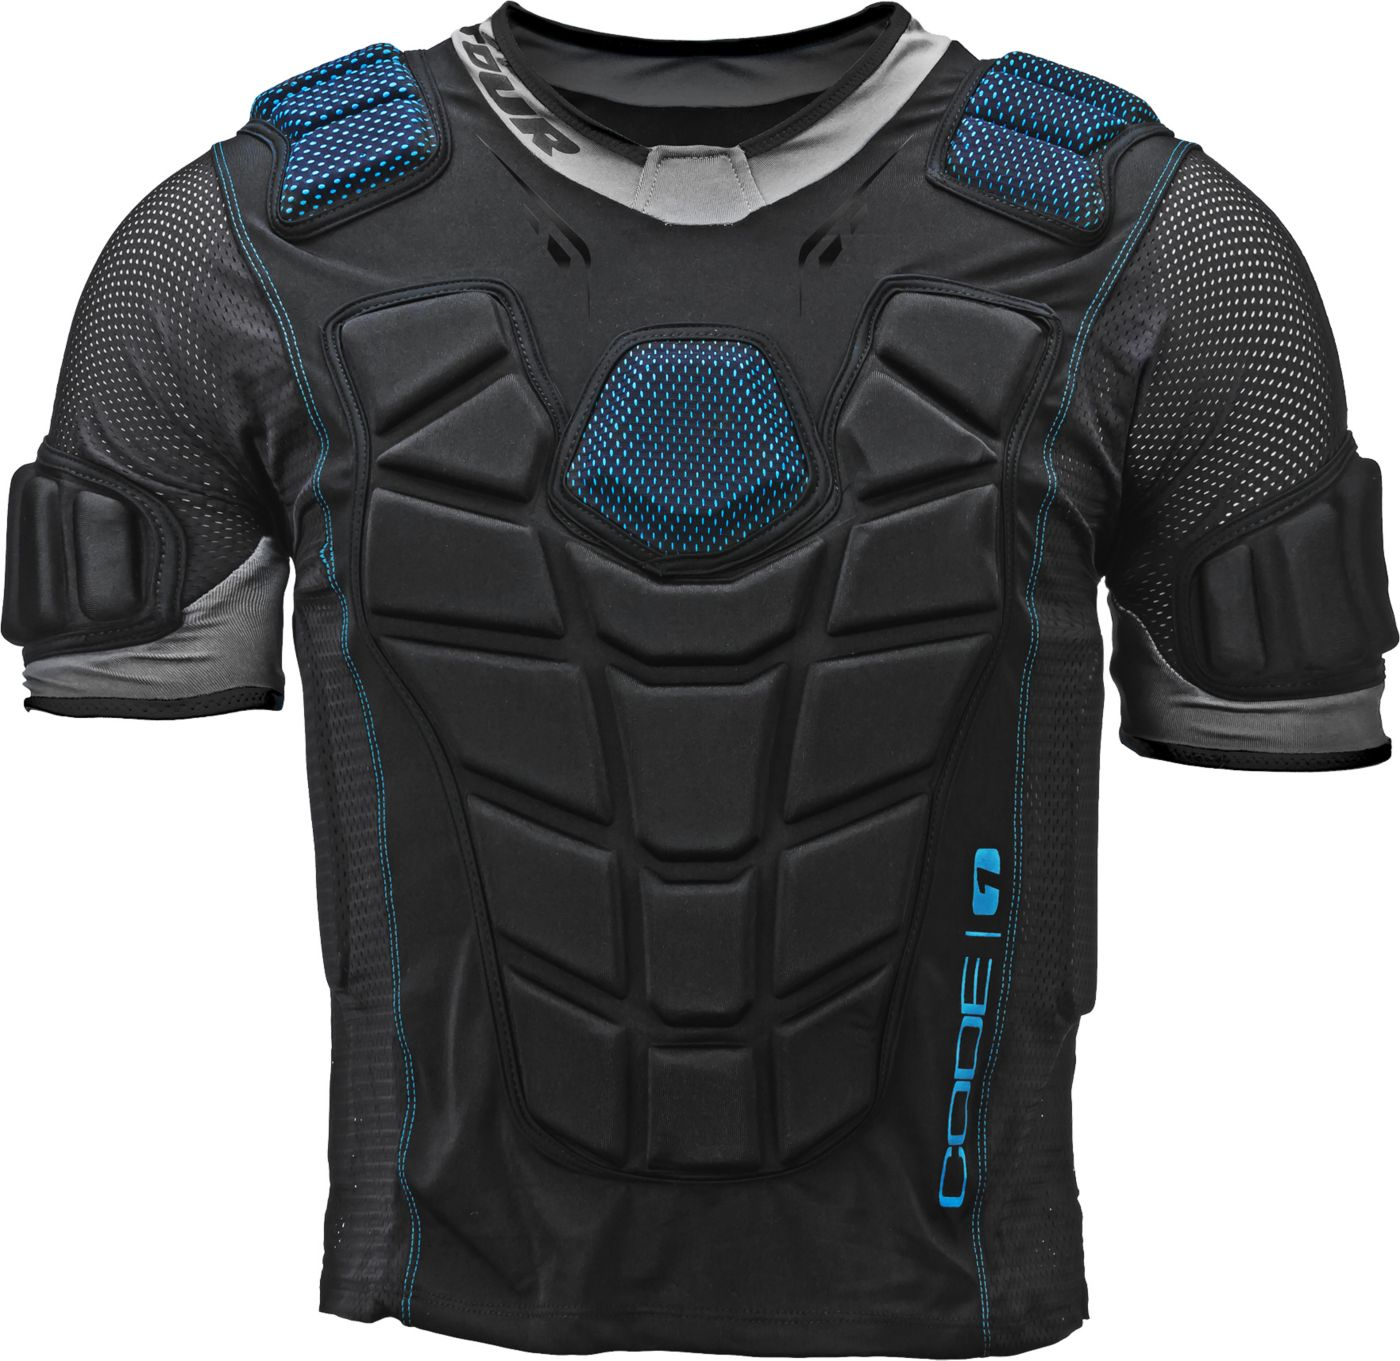 Tour Adult Code 1 Padded Upper Body Roller Hockey Protector